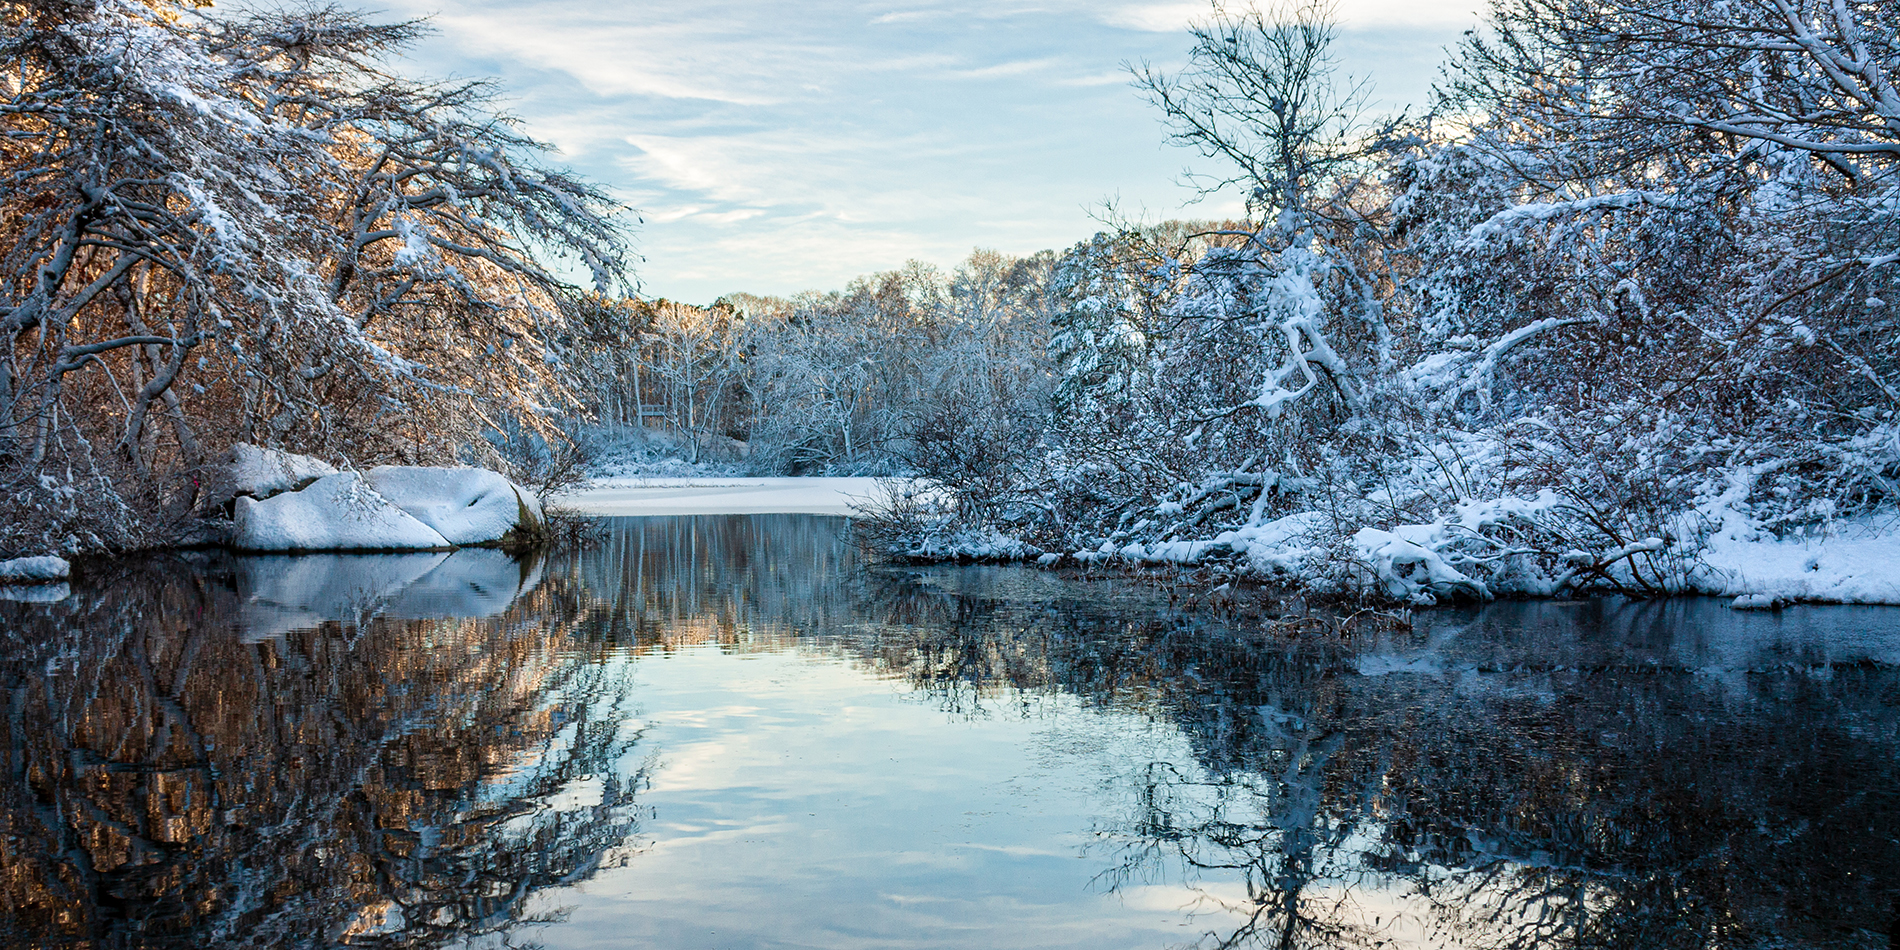 Winter at the Grist Mill, Photocontest winner by David Lear